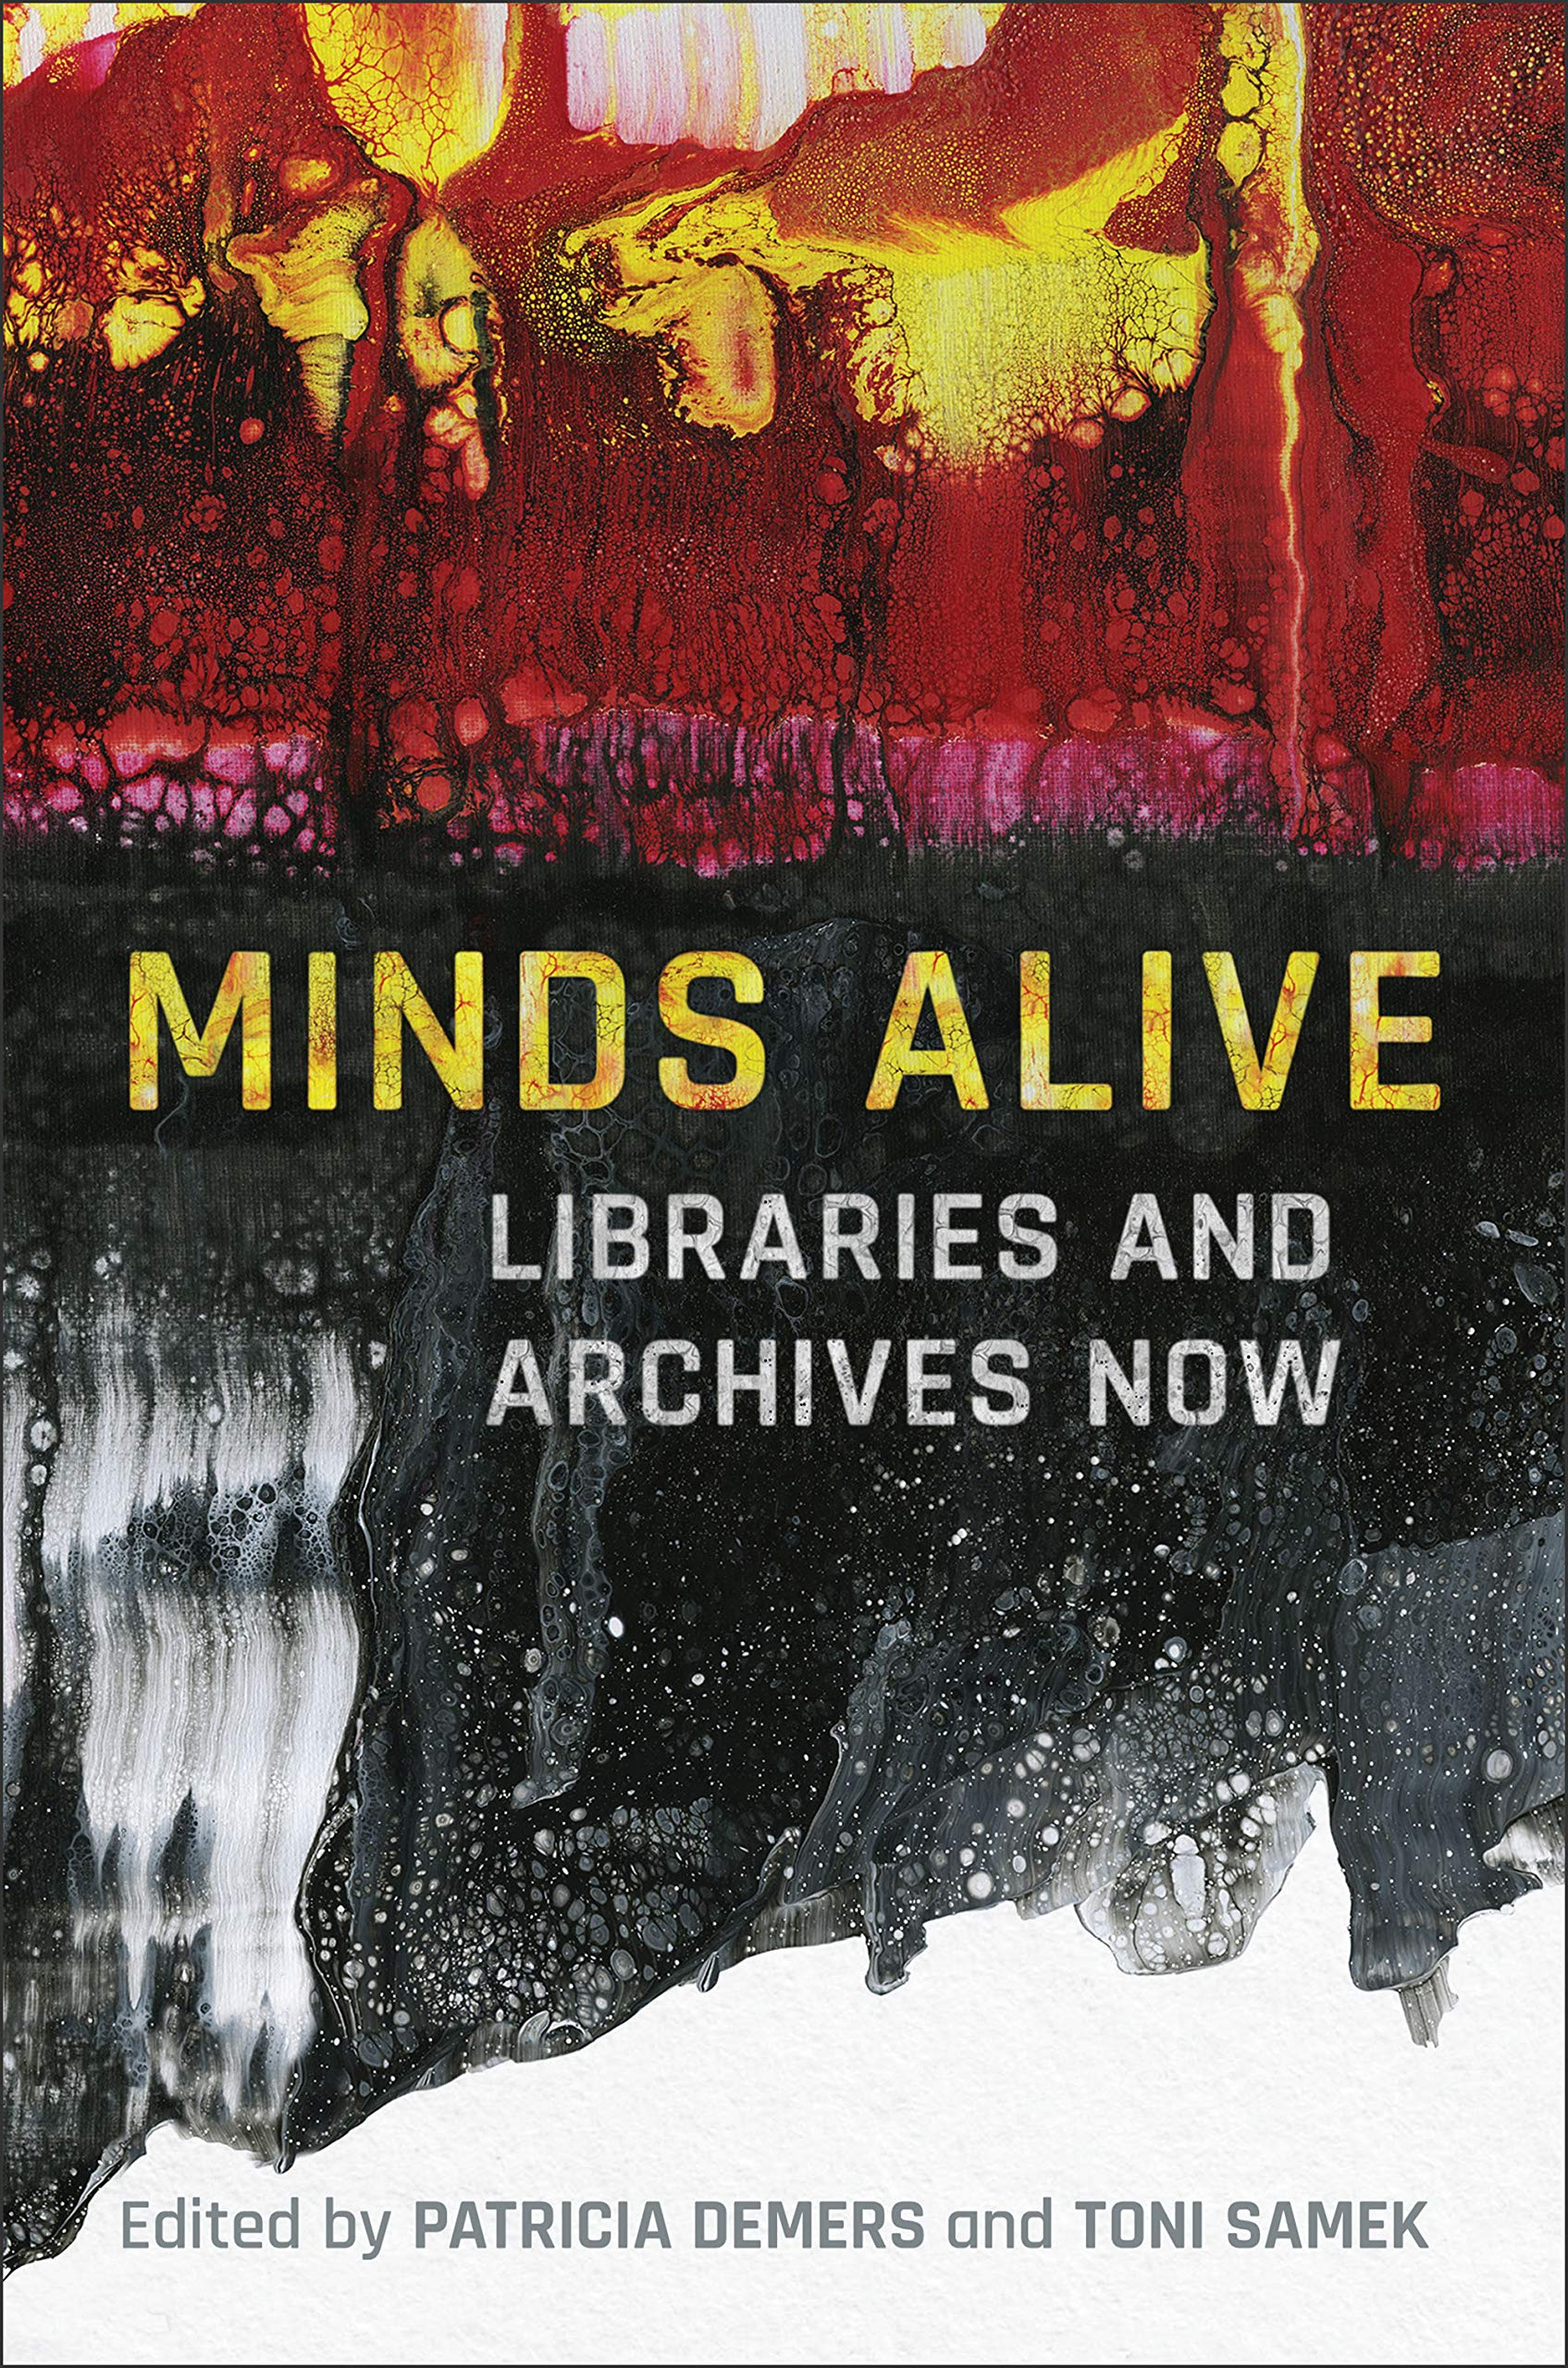 Patricia Demers, Toni Samek. Minds Alive: Libraries and Archives Now.